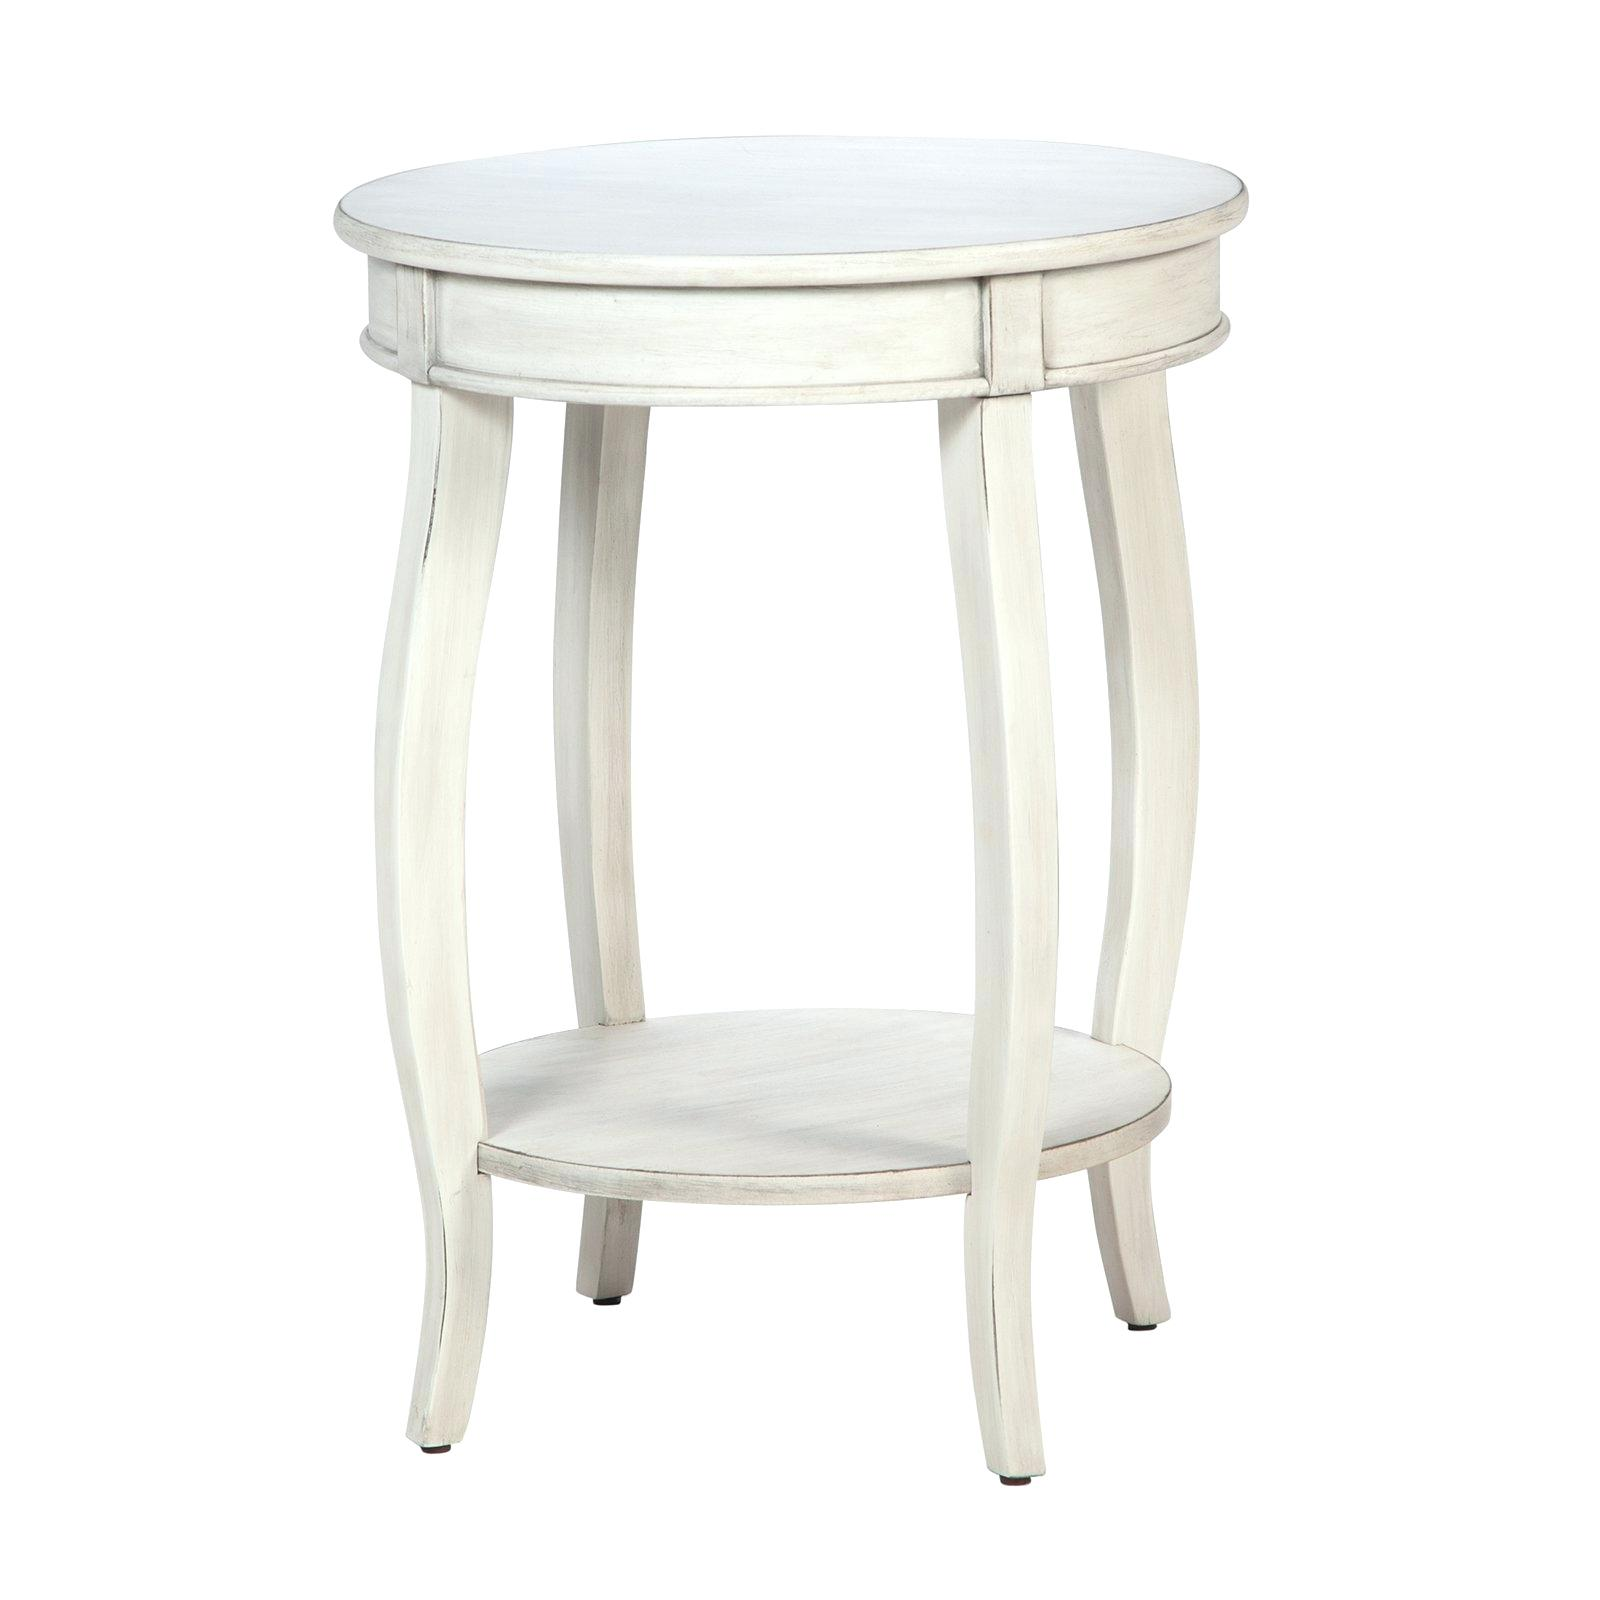 white accent table tables living room distressed round target ikea whitewash red wood west elm armchair malm side oriental lamps dining chairs small night folding patio and